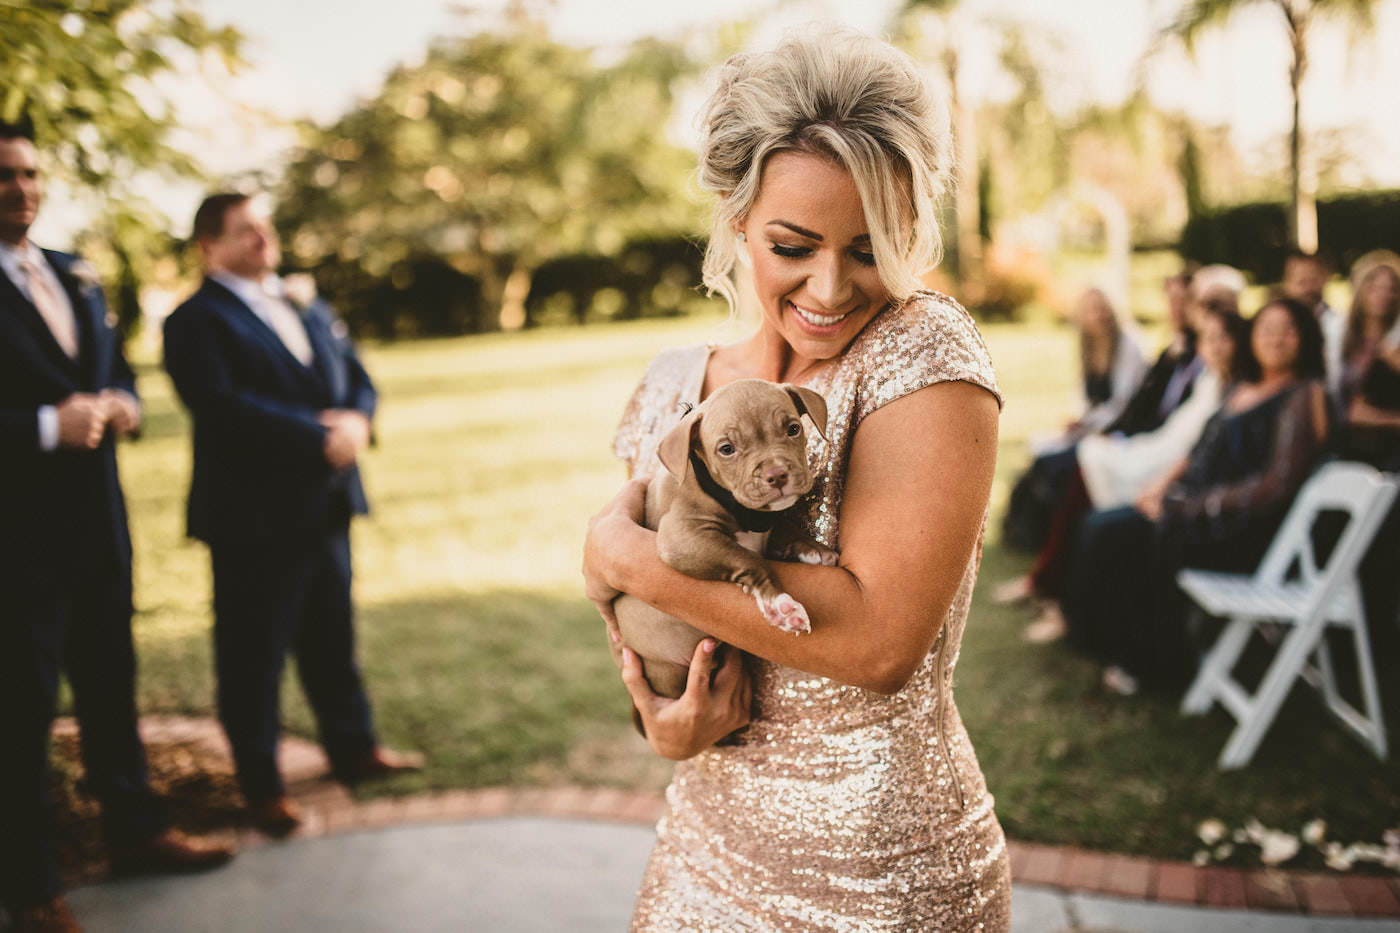 Rose Gold Champagne Metallic Sequin Bridesmaid Dress | Tampa Wedding with Adoptable Puppies | Puppy Instead of Bridesmaid Bouquet